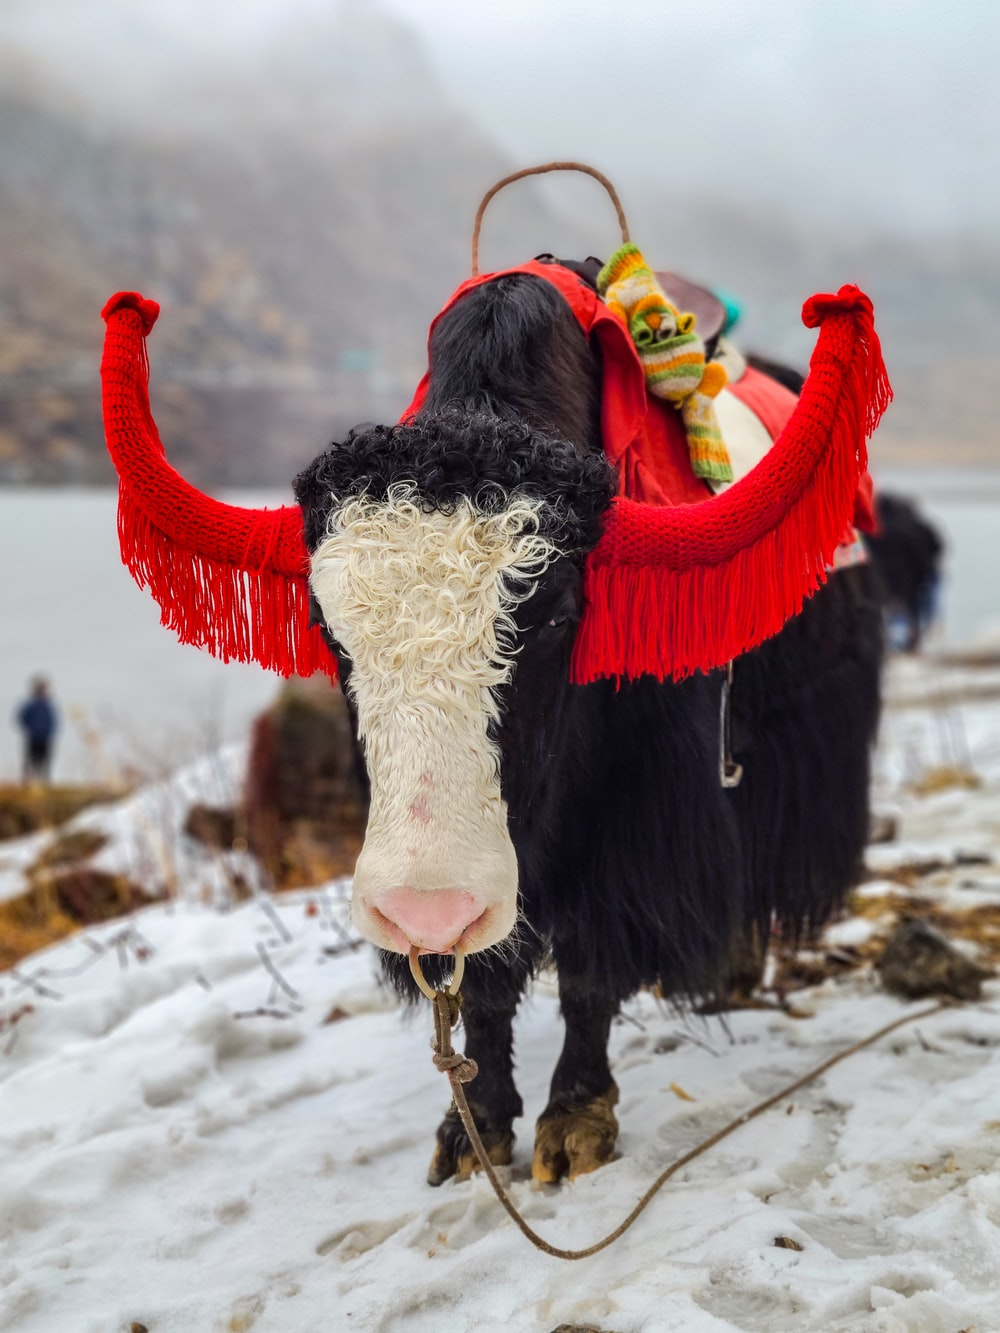 white and black cow on snow covered ground during daytime